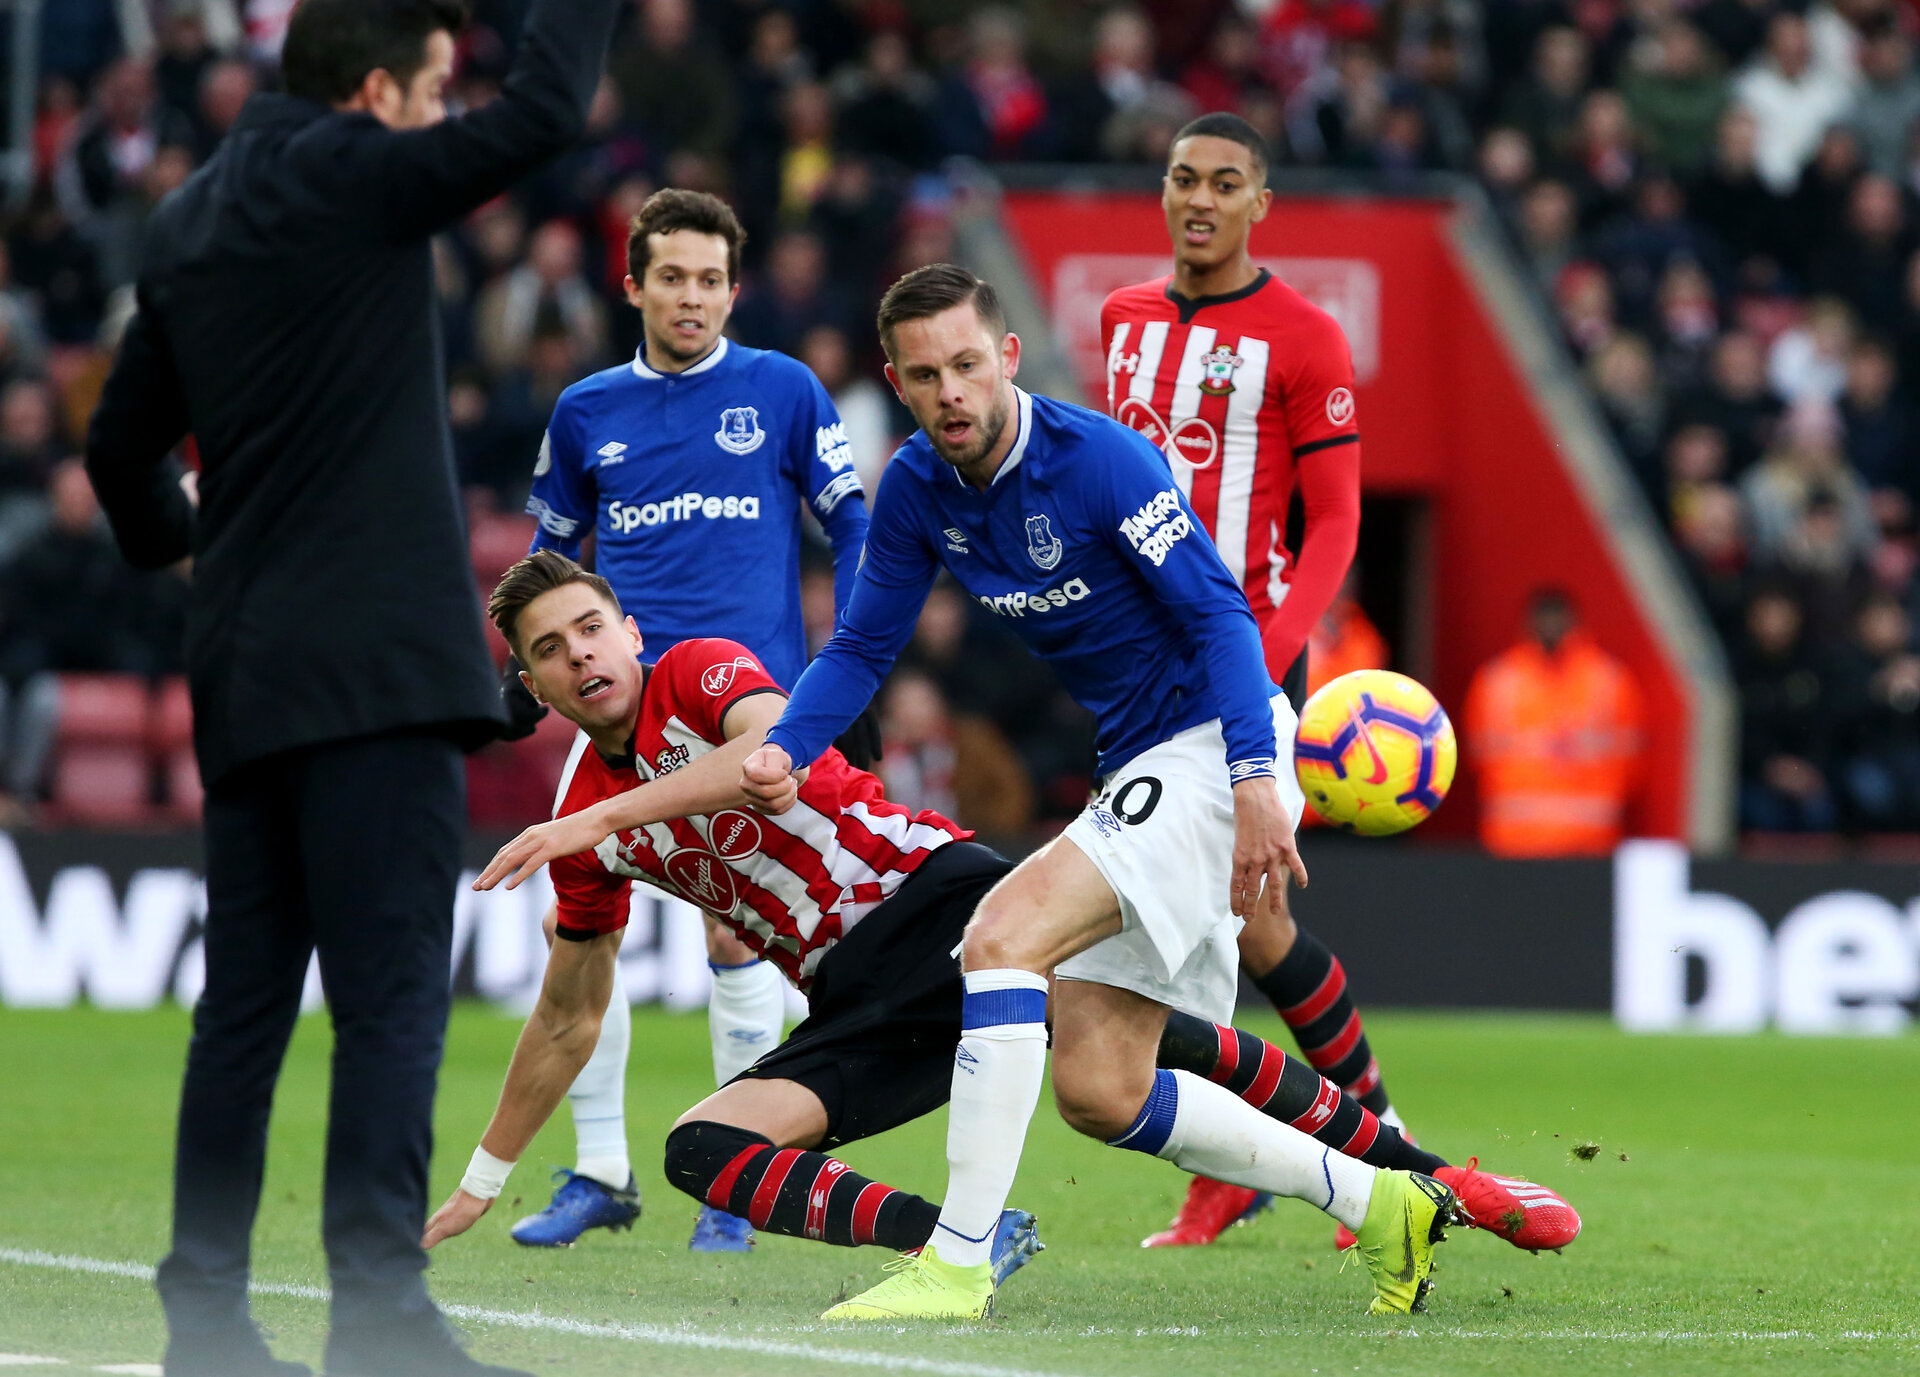 SOUTHAMPTON, ENGLAND - JANUARY 19: Jan Bednarek during the Premier League match between Southampton FC and Everton FC at St Mary's Stadium on January 19, 2019 in Southampton, United Kingdom. (Photo by Chris Moorhouse/Southampton FC via Getty Images)